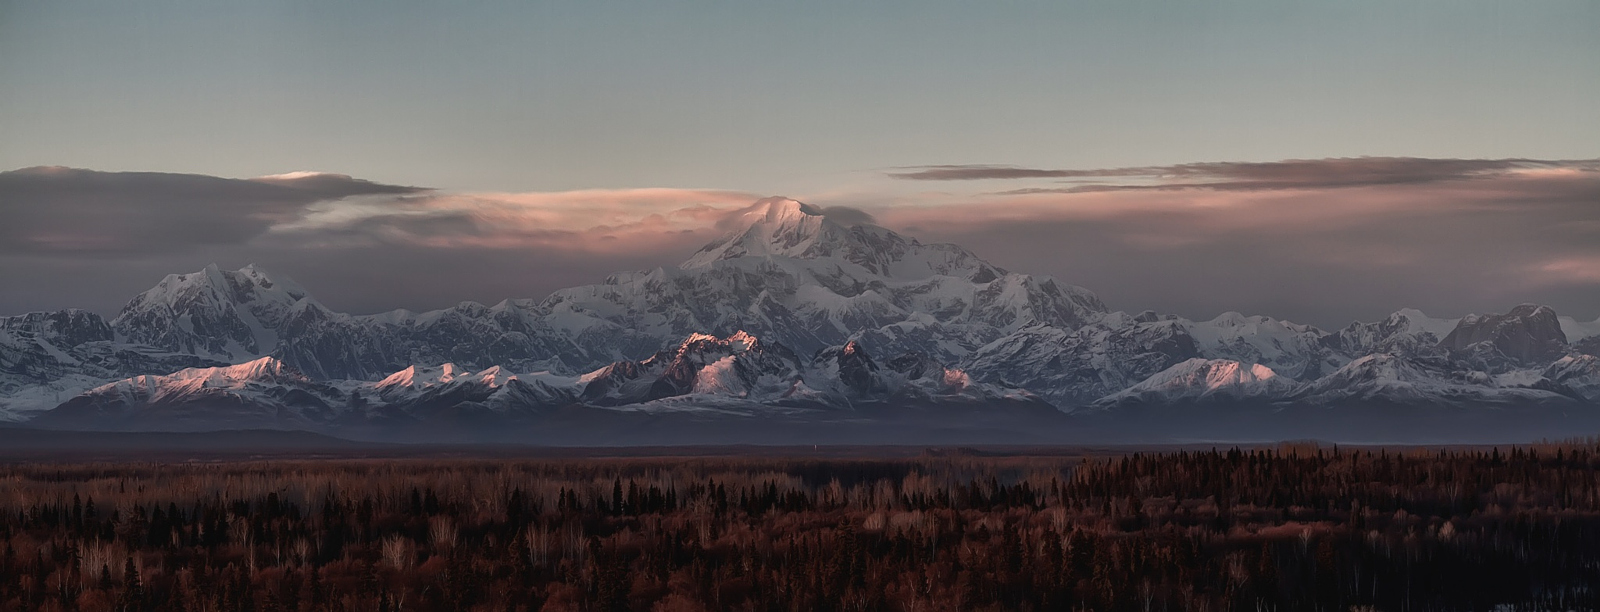 McKinley No More: 20 Beautiful Photos of Denali